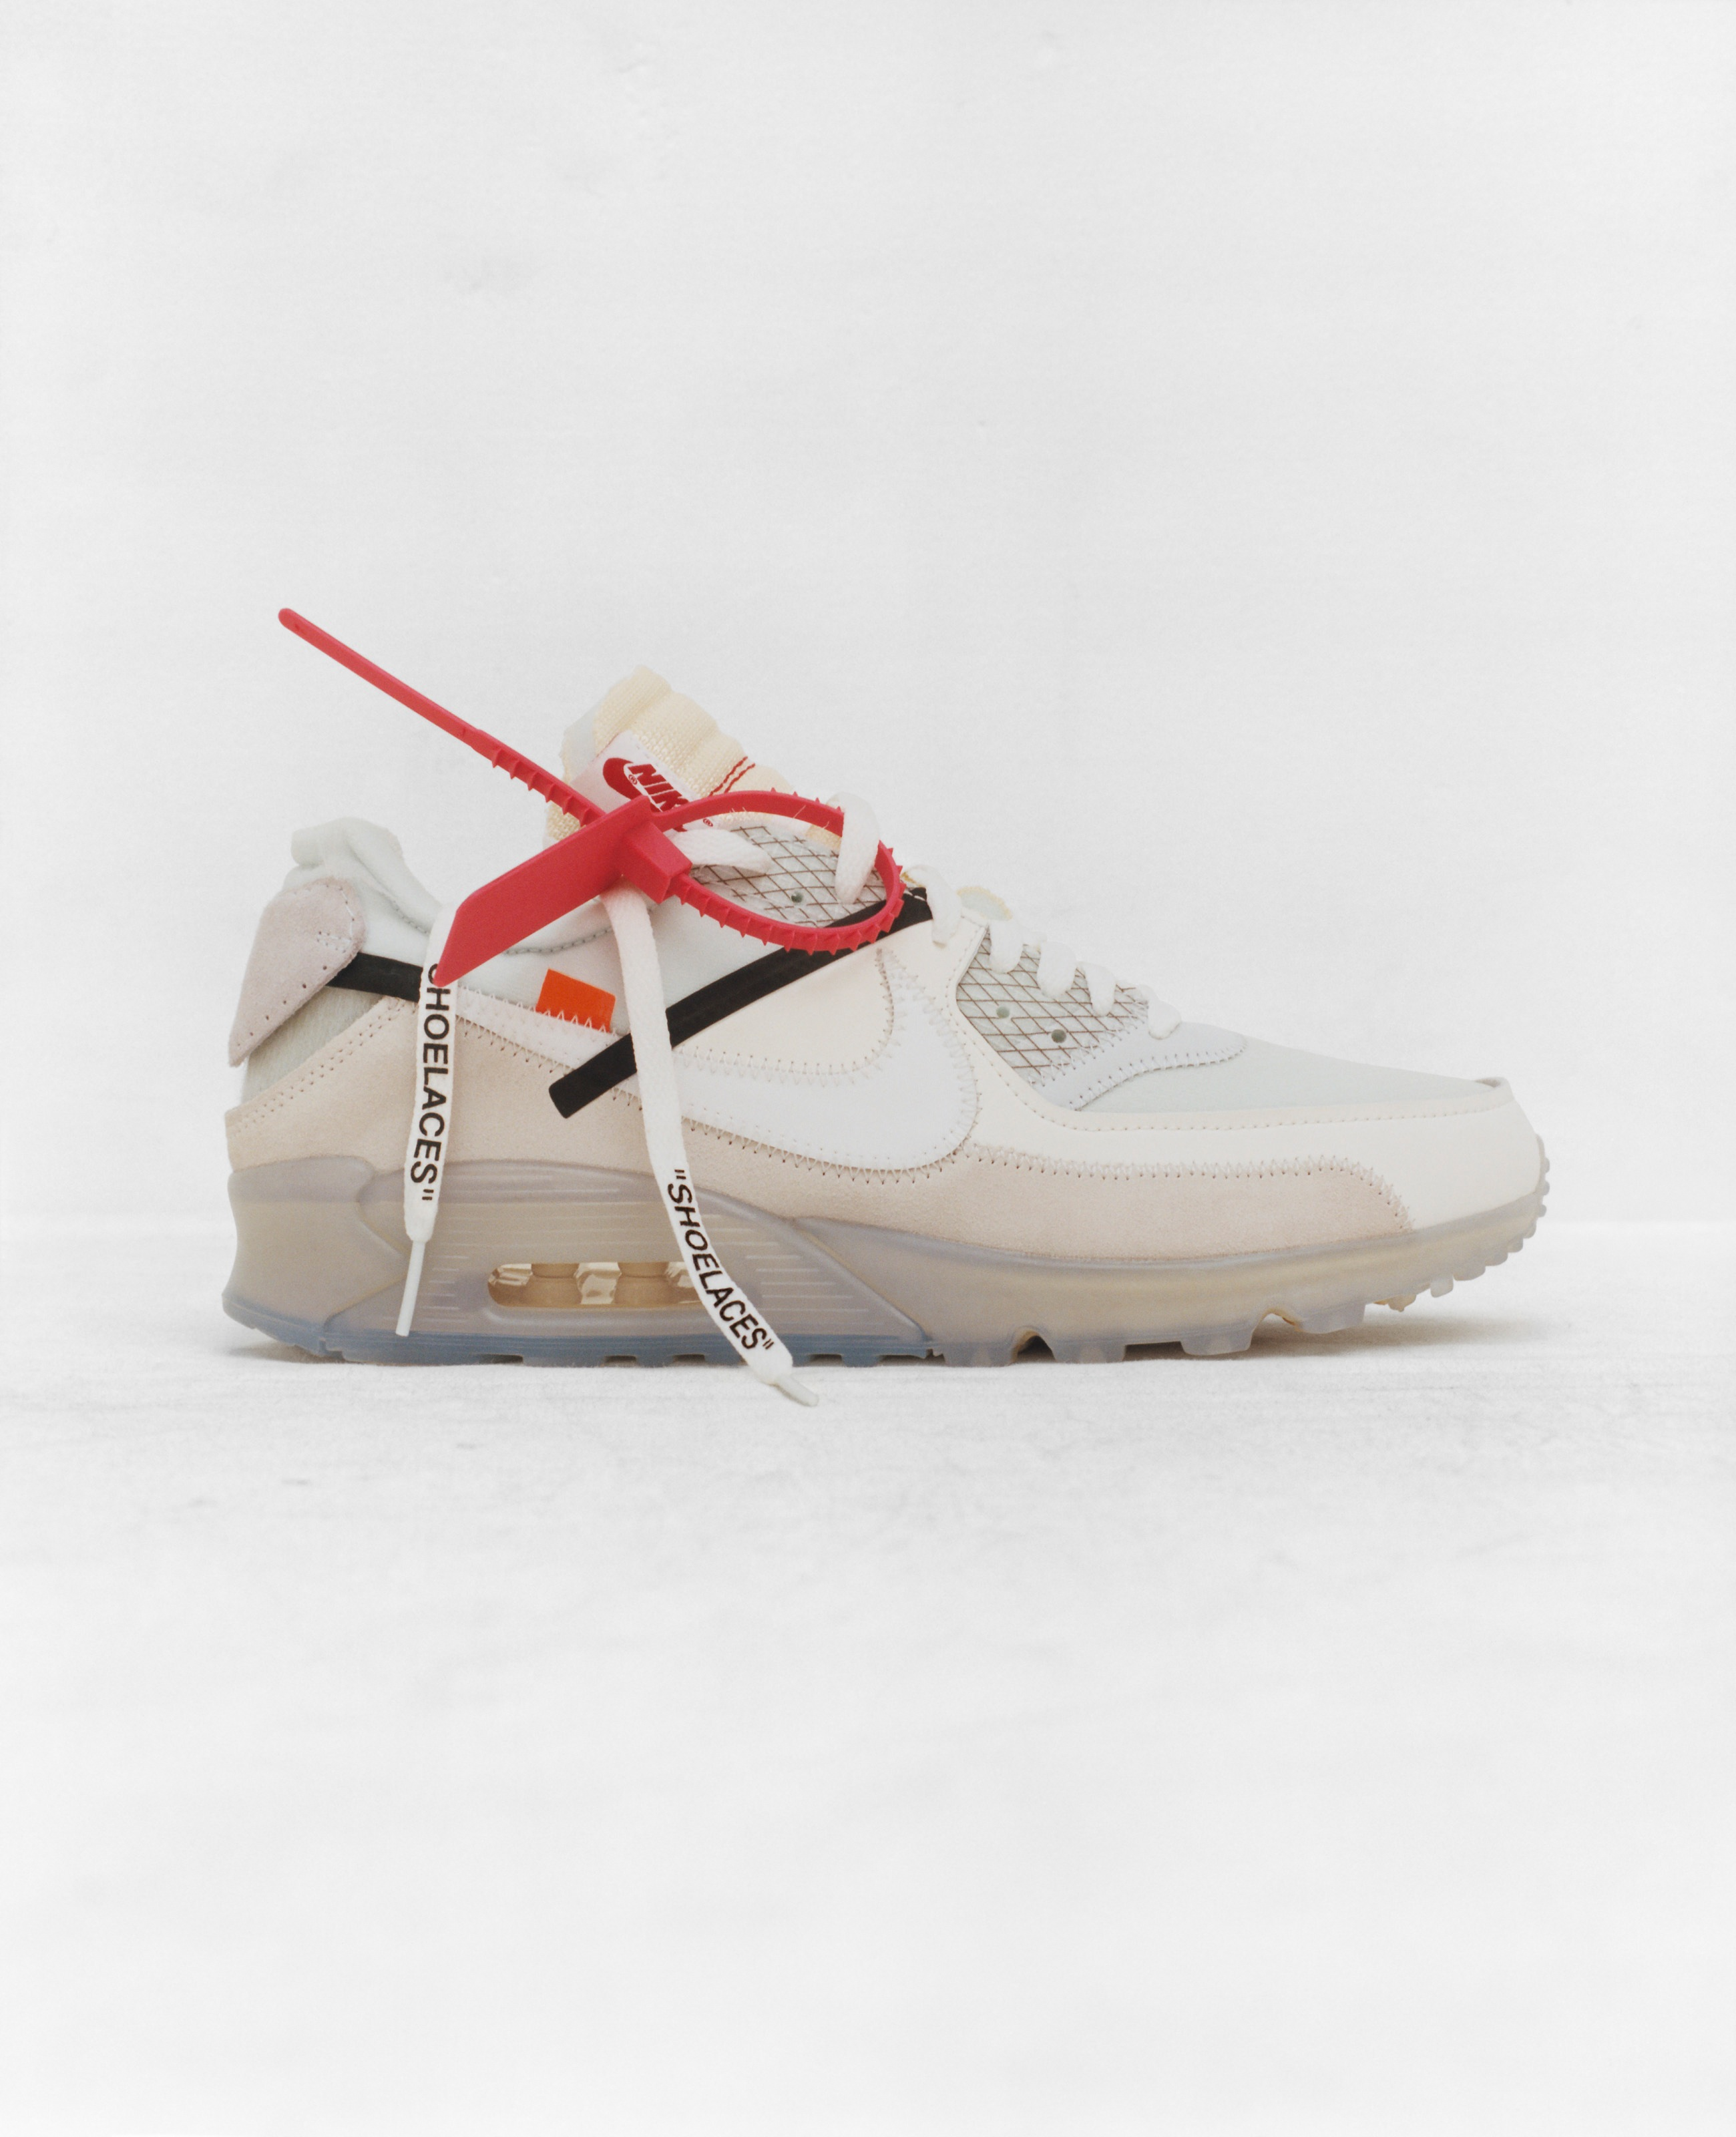 Virgil abloh x nike the ten collection sneakers for Off white virgil abloh